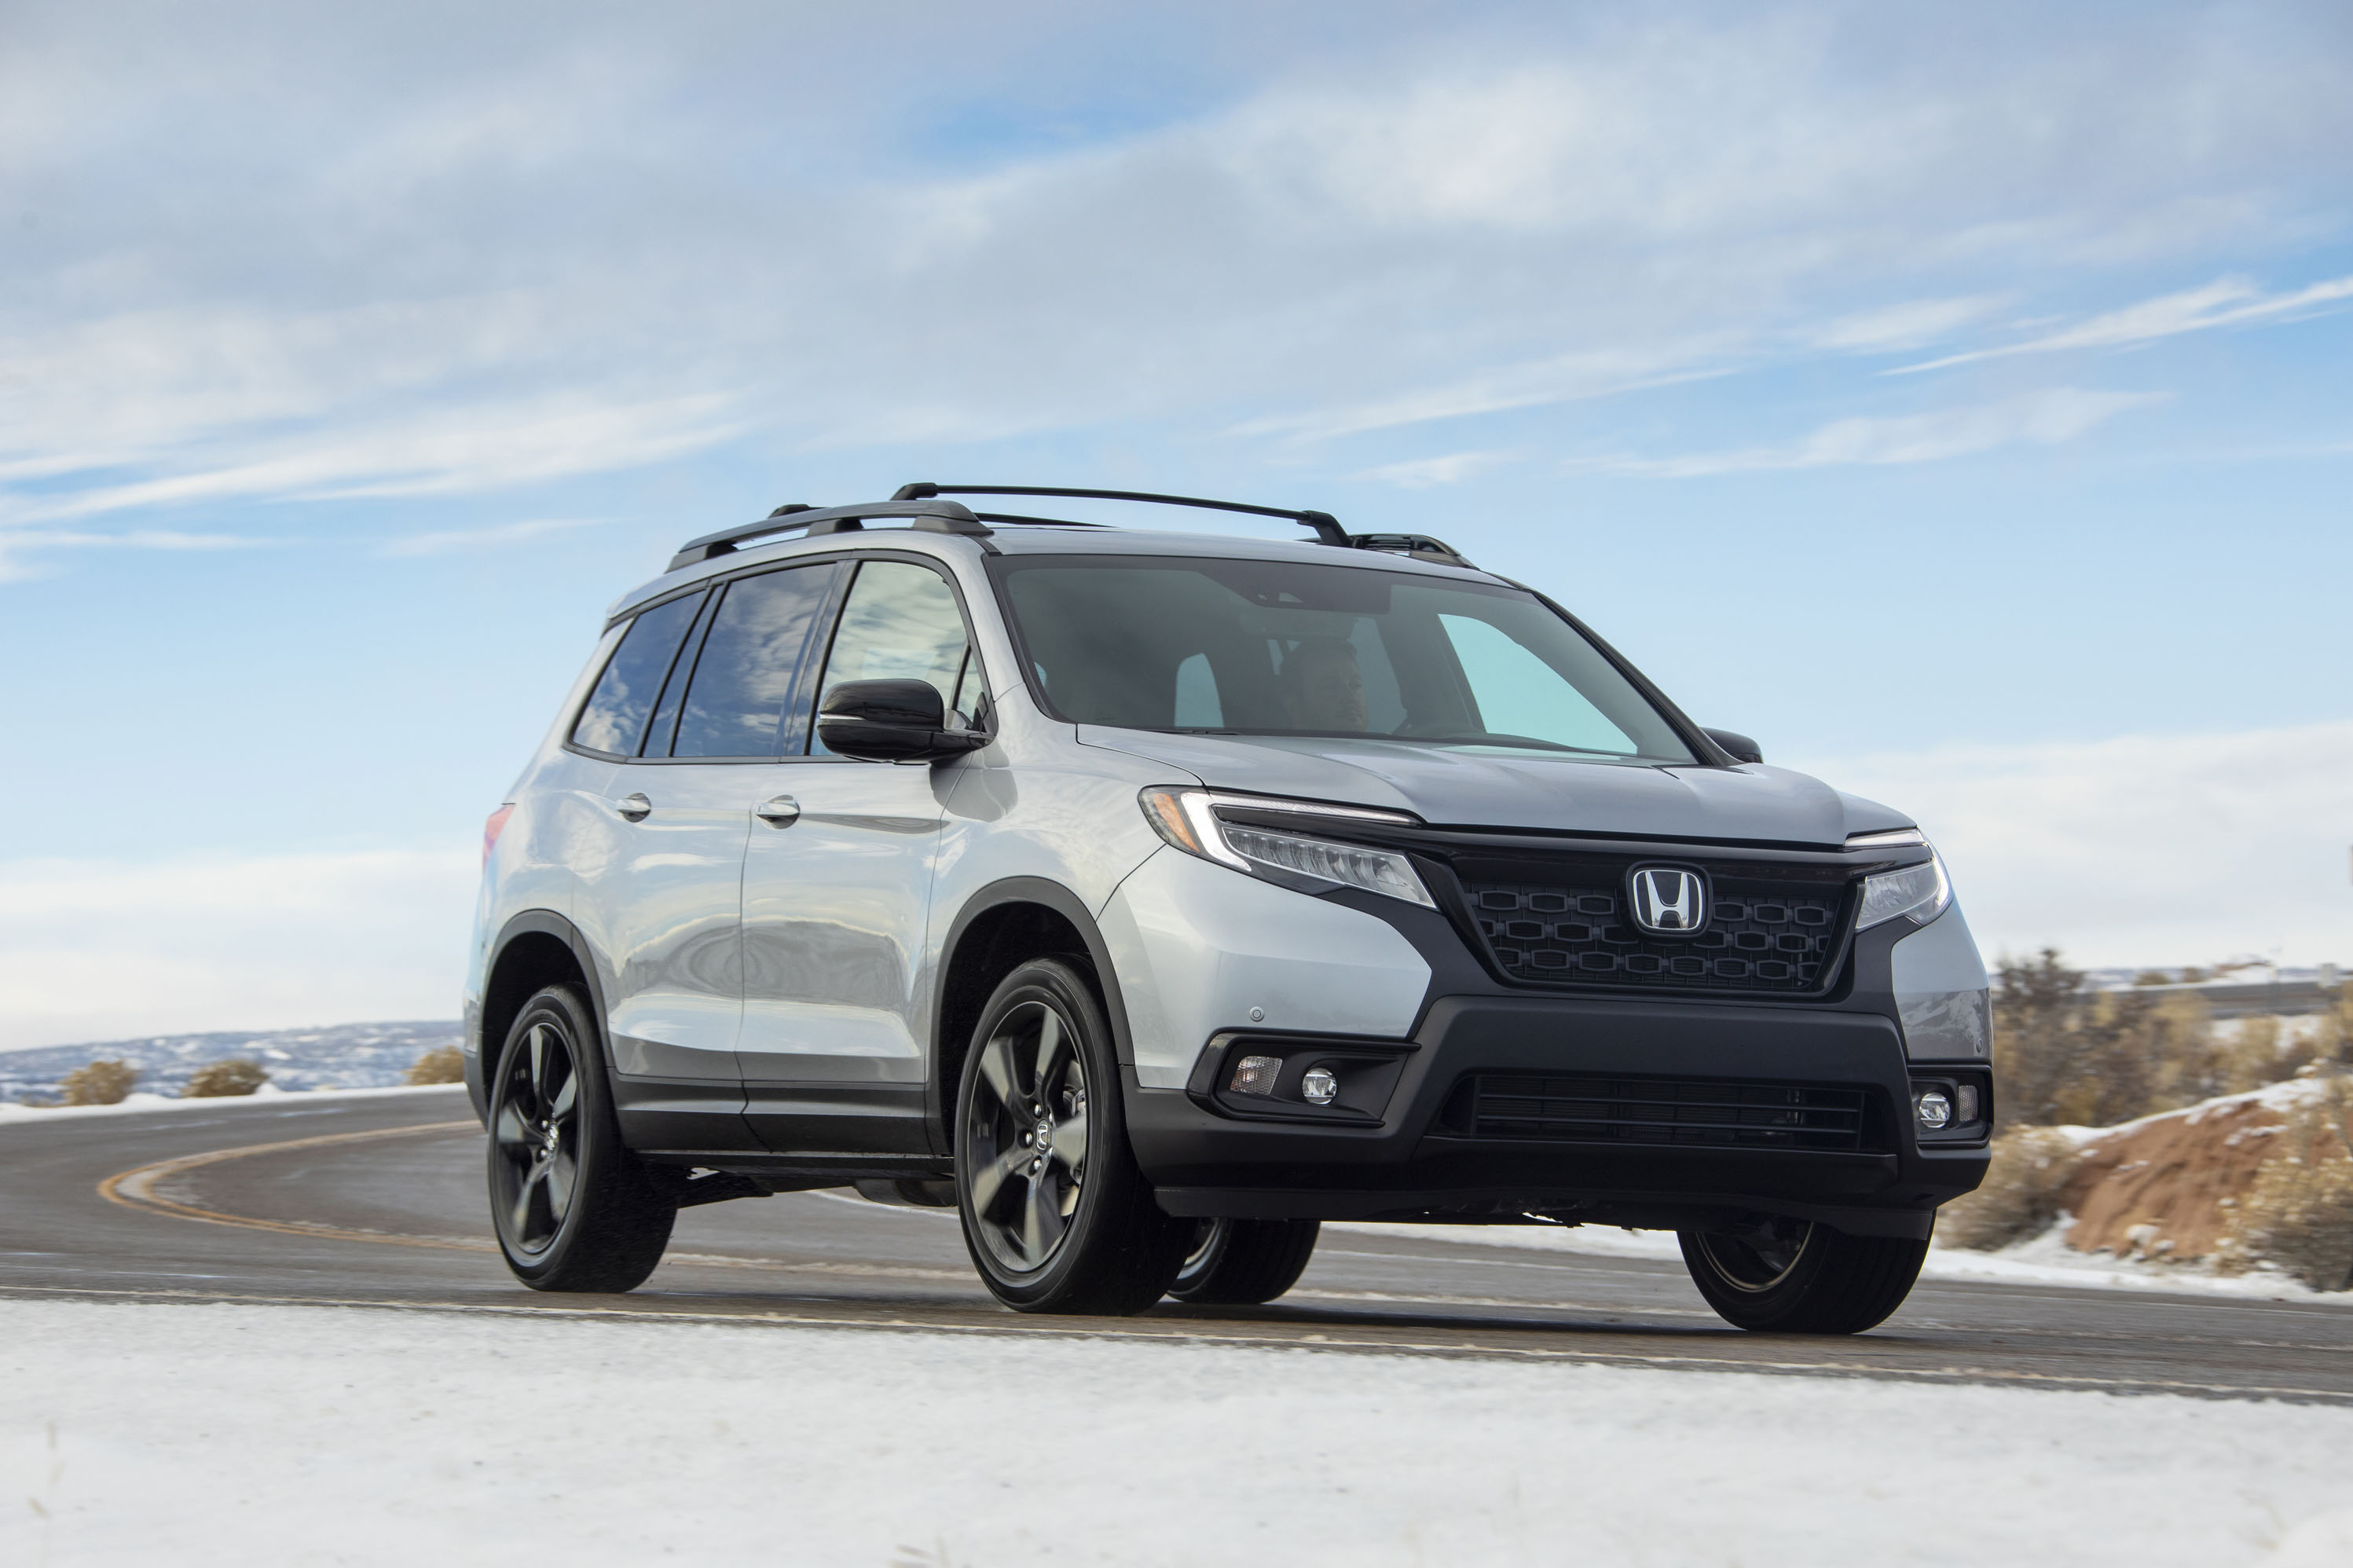 New And Used Honda Passport Prices Photos Reviews Specs The